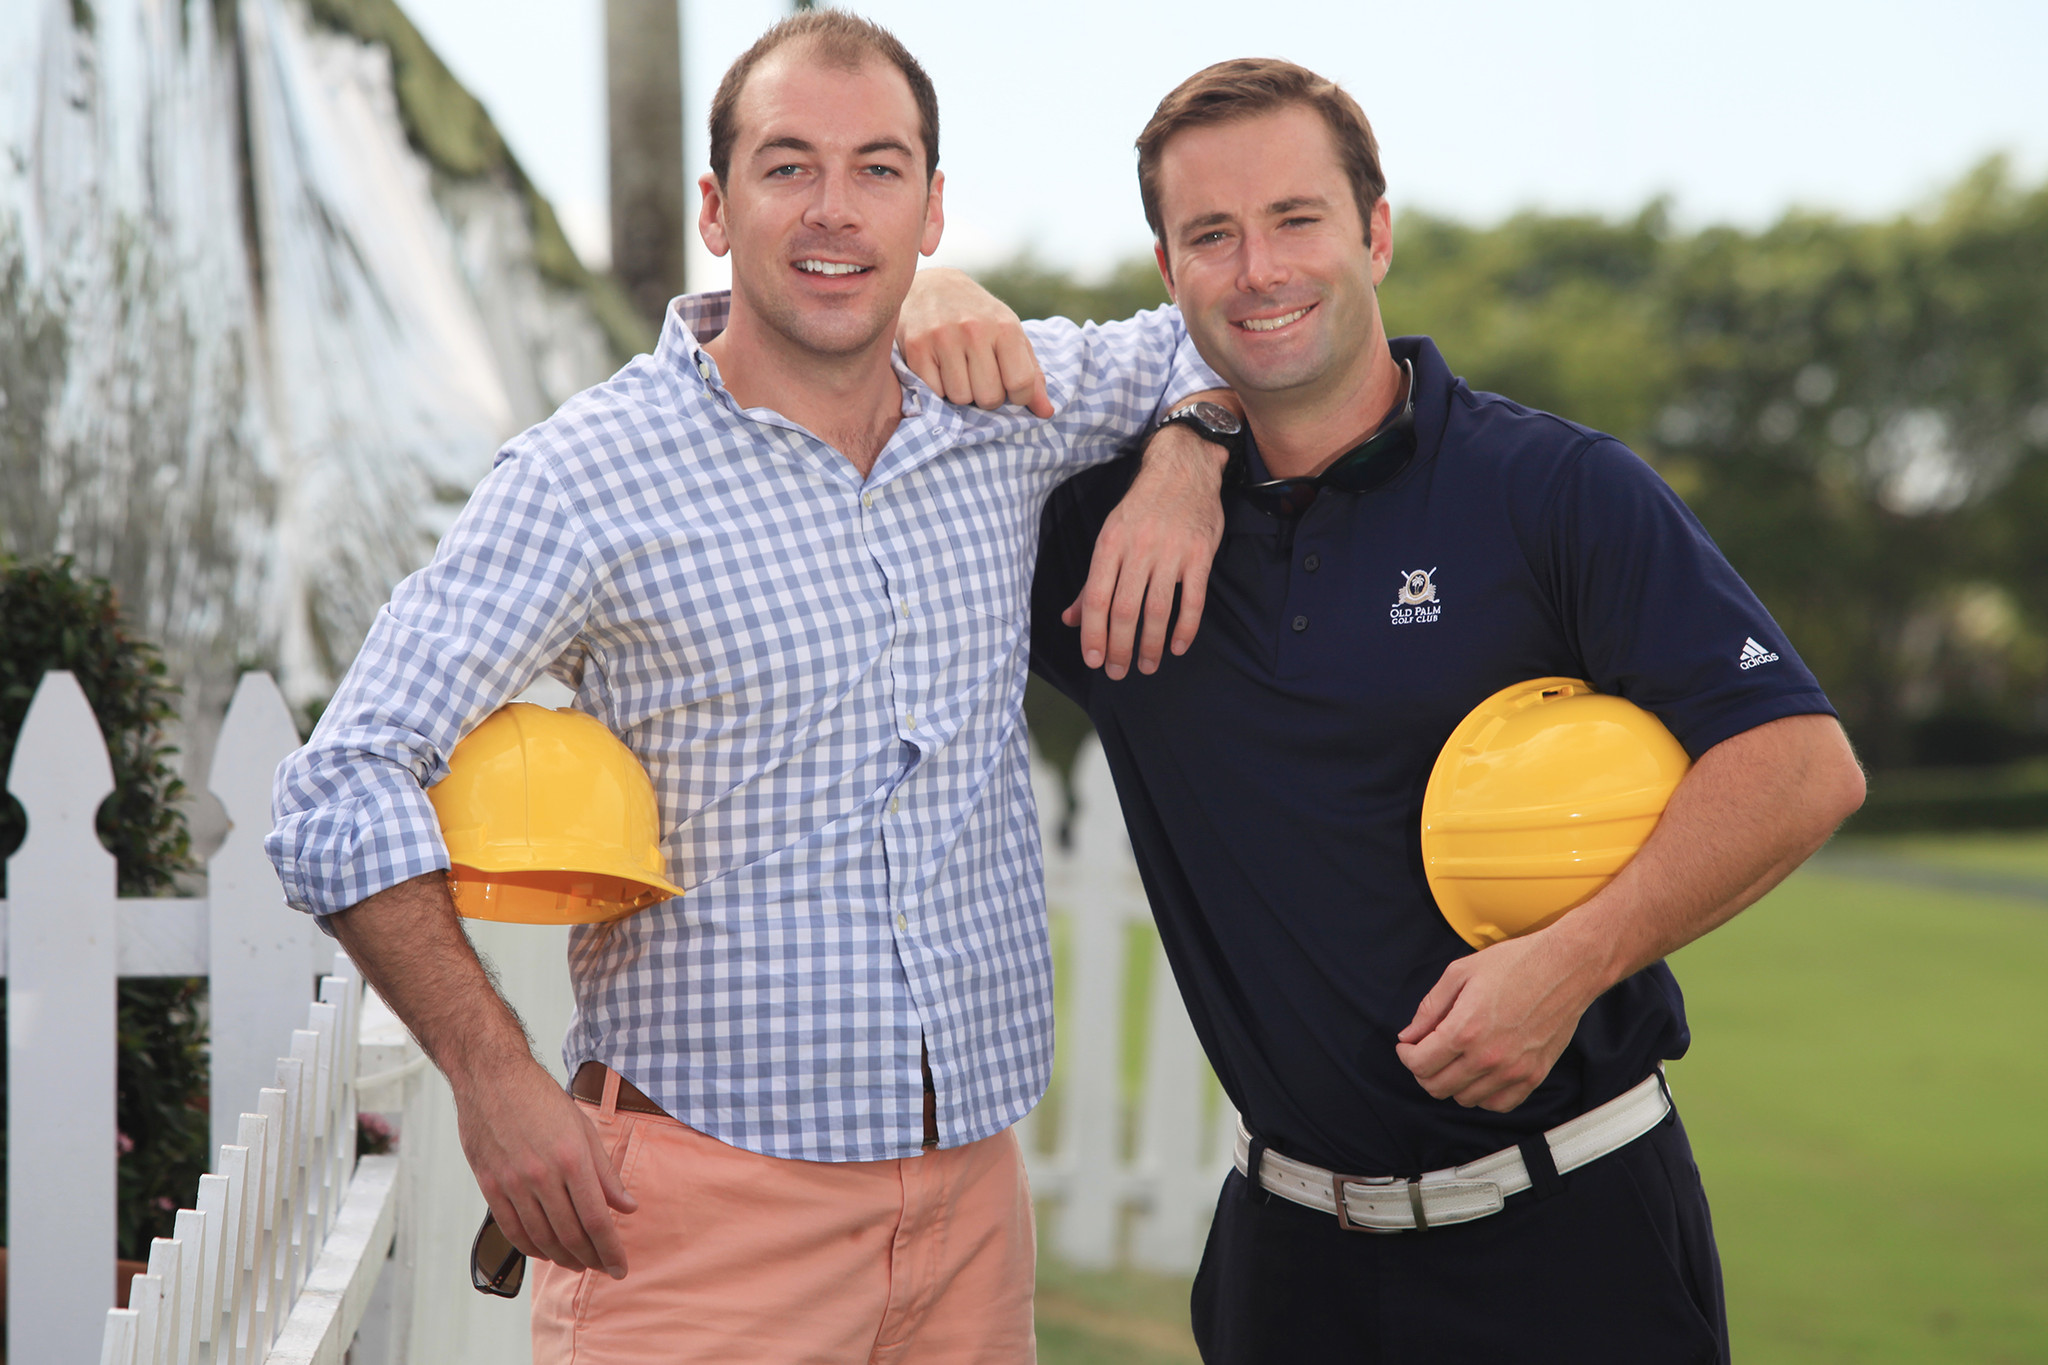 Society Scene photos - Brad Caldwell, left, and Chris Knapp will attend YMCA of the Palm Beaches